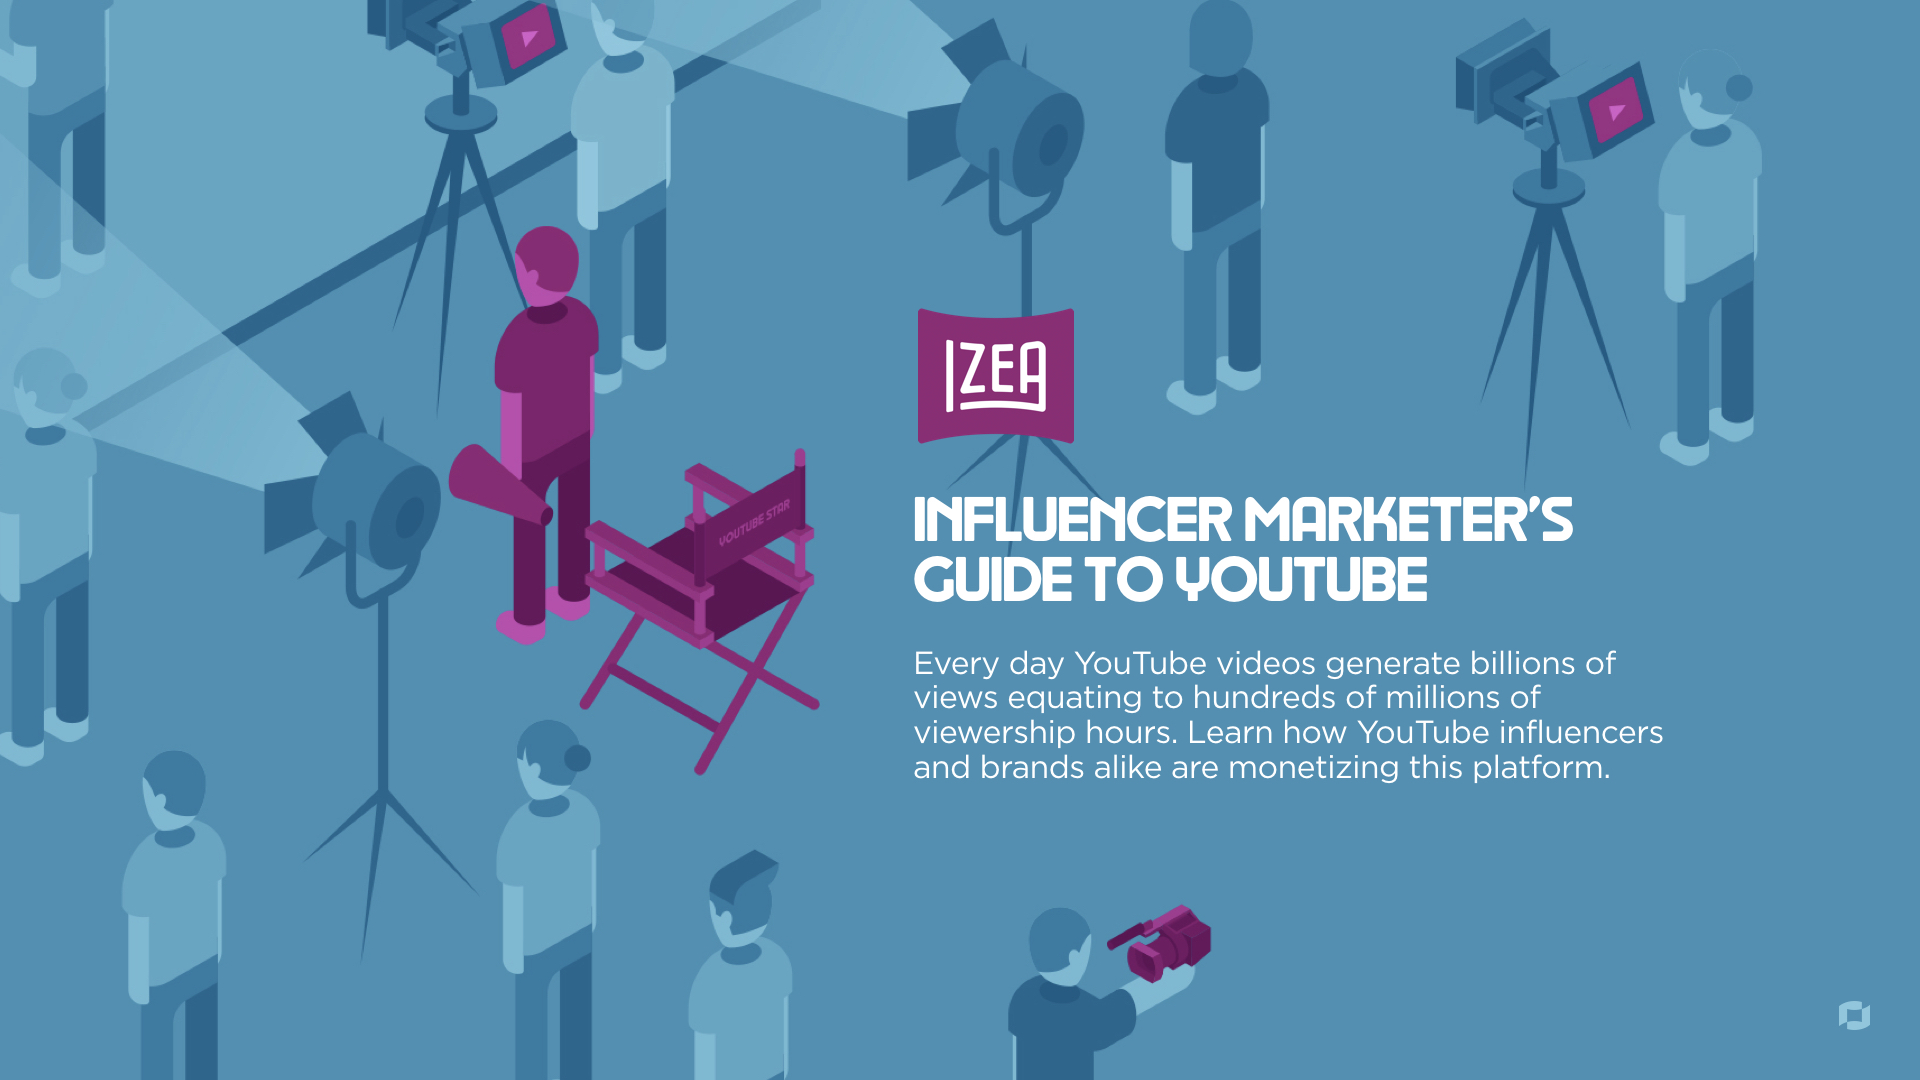 Influencer Marketer's Guide to YouTube Cover